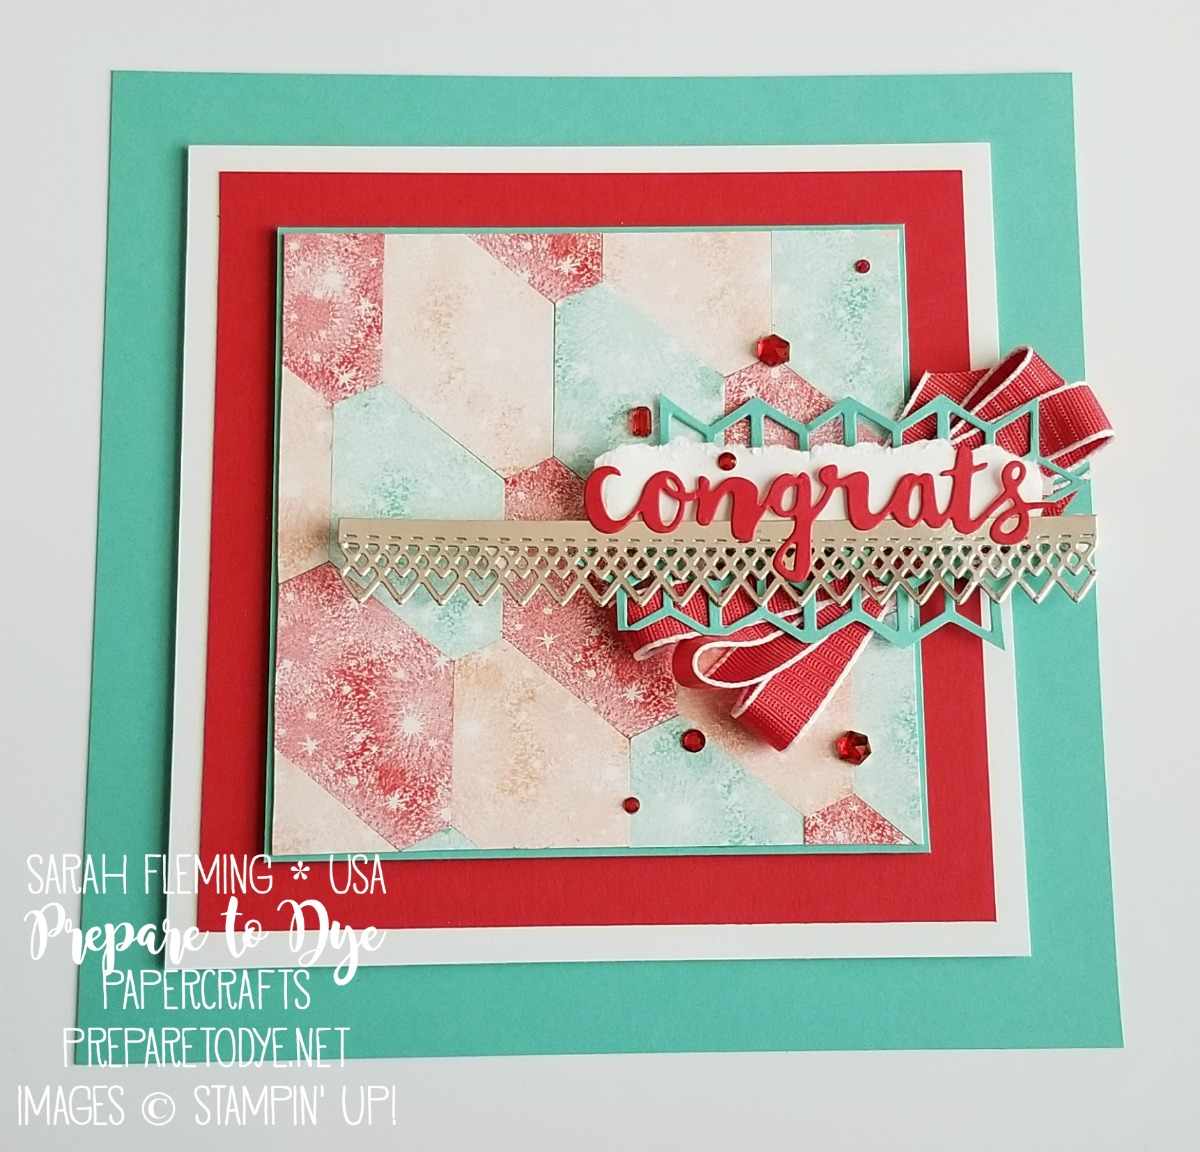 "Stampin' Up! home decor congratulations 8""x8"" piece using Bokeh Dots, Detailed Lace Edgelits, Eclectic Layers thinlits, Sunshine Wishes thinlits, Tailored Tag Punch - Sarah Fleming - Prepare to Dye Papercrafts"